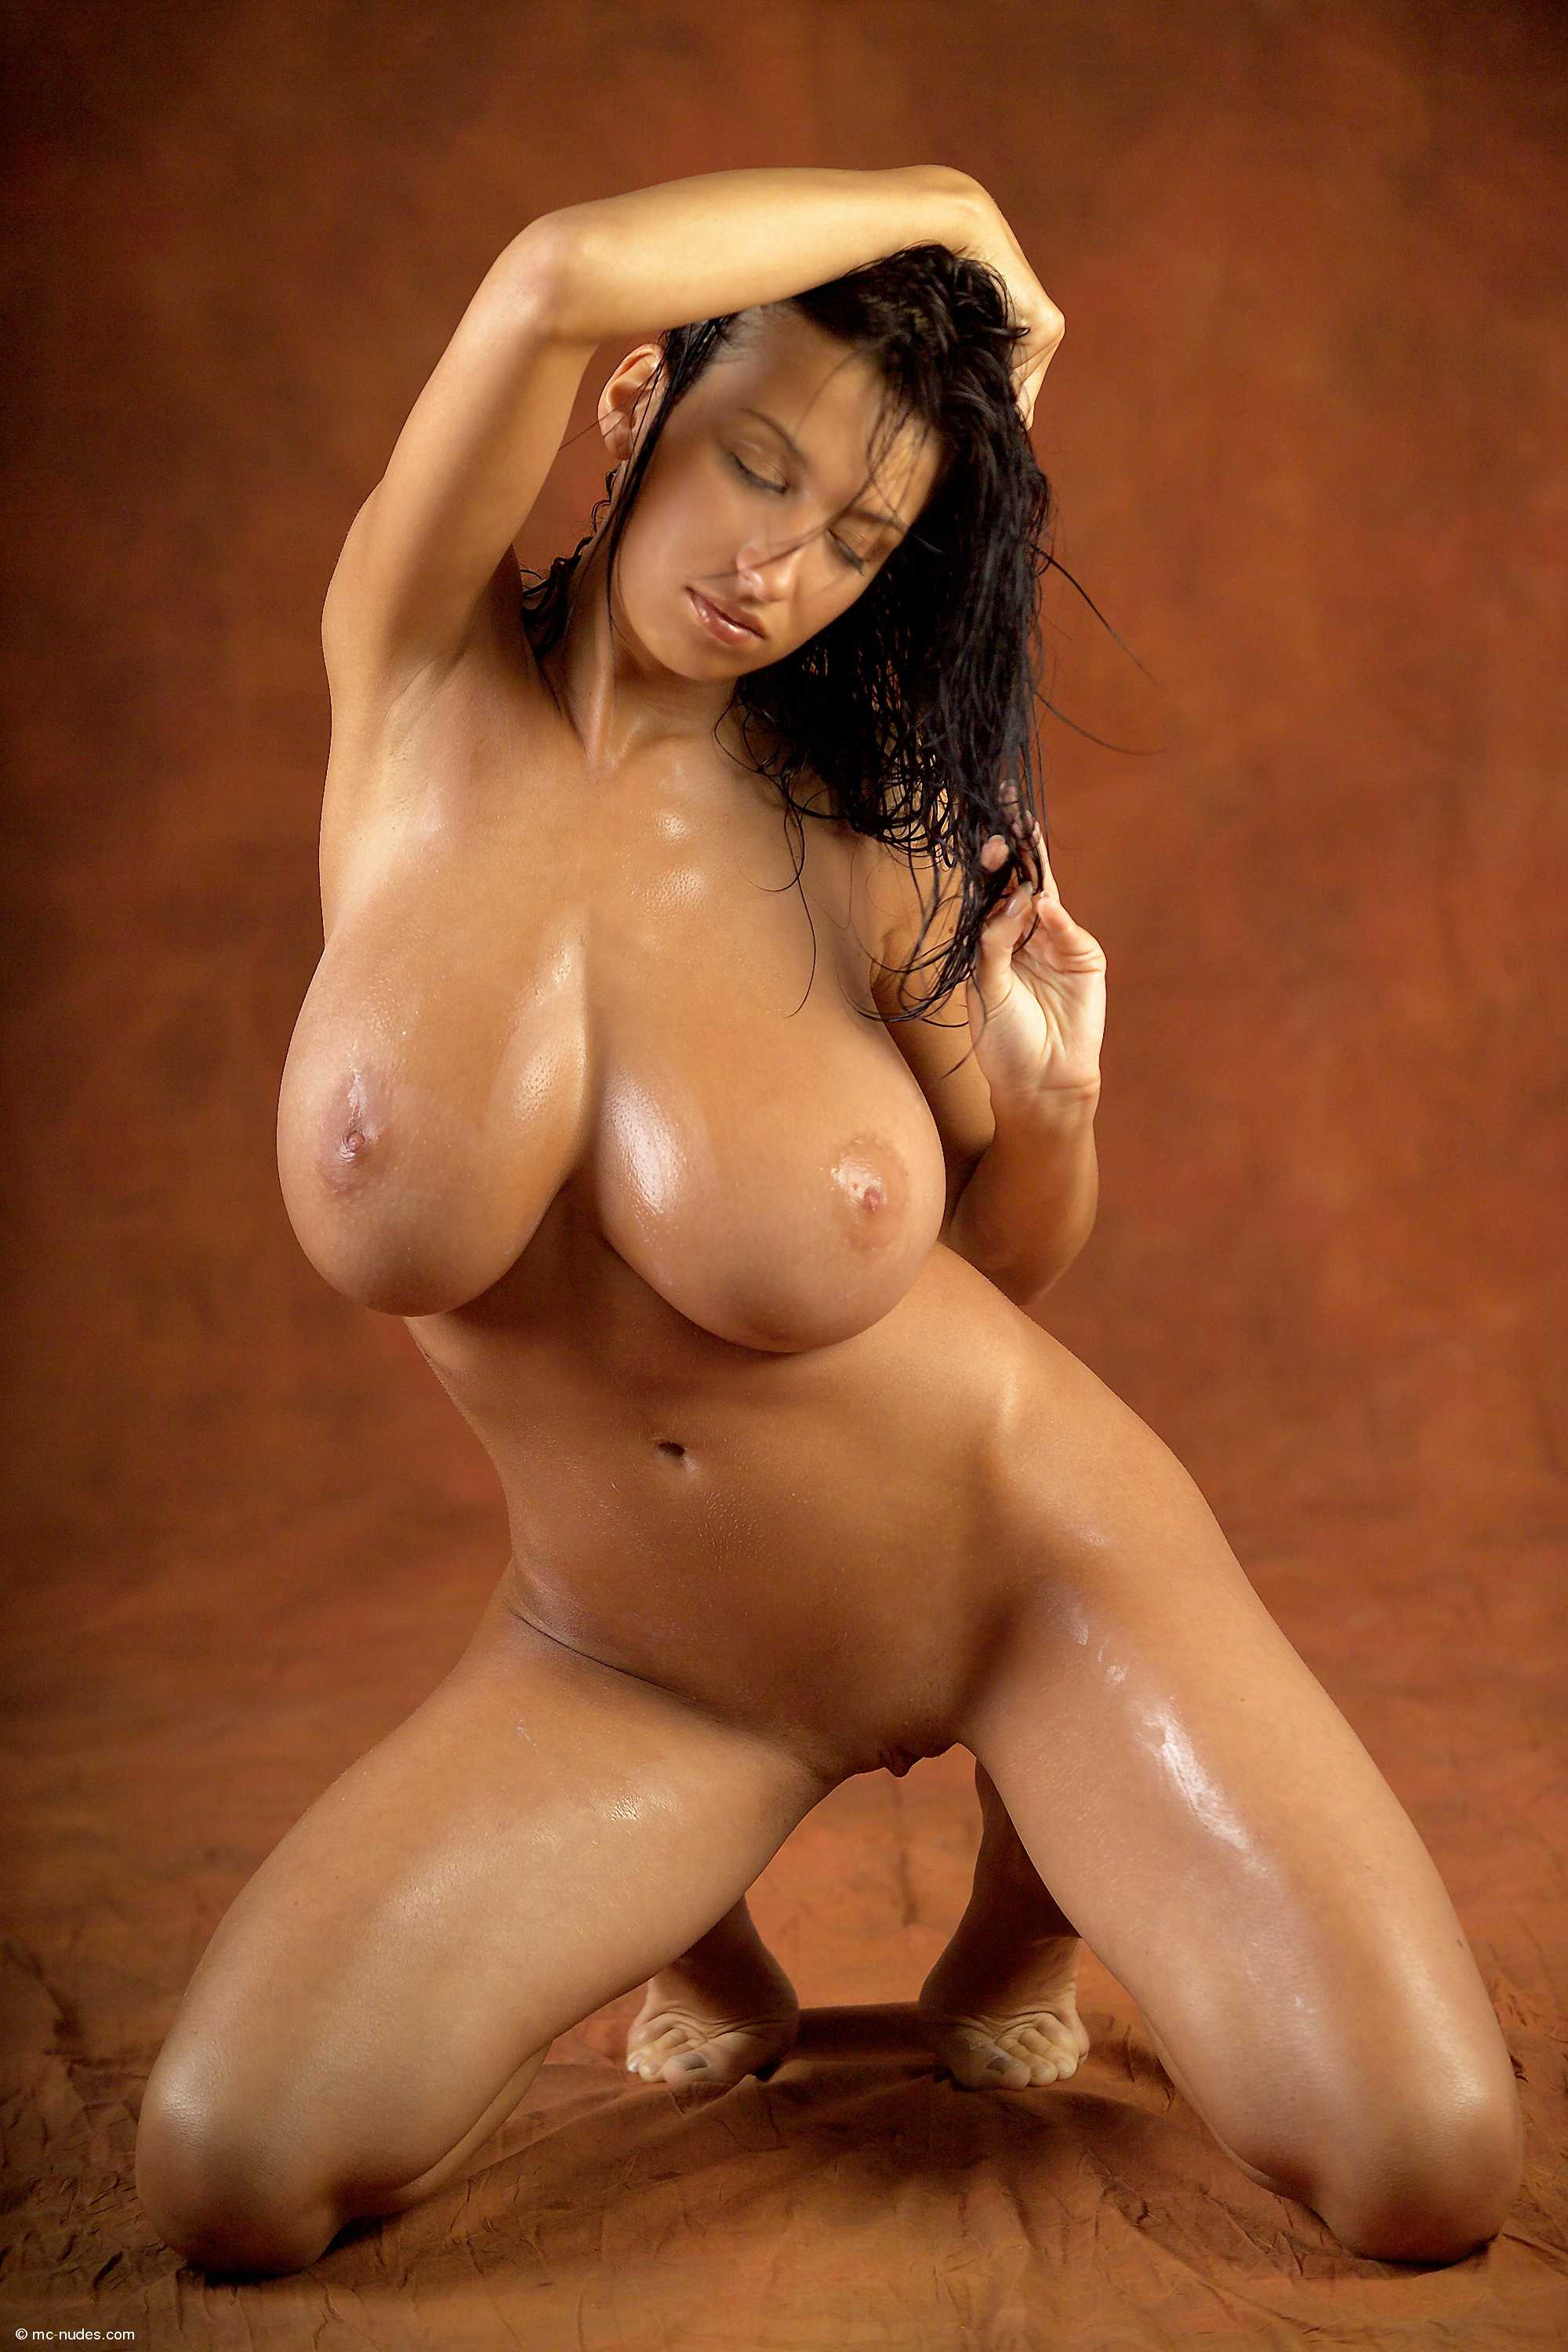 Naked Lady Of The Week Jana Defi  Uncouth Reflections-9406